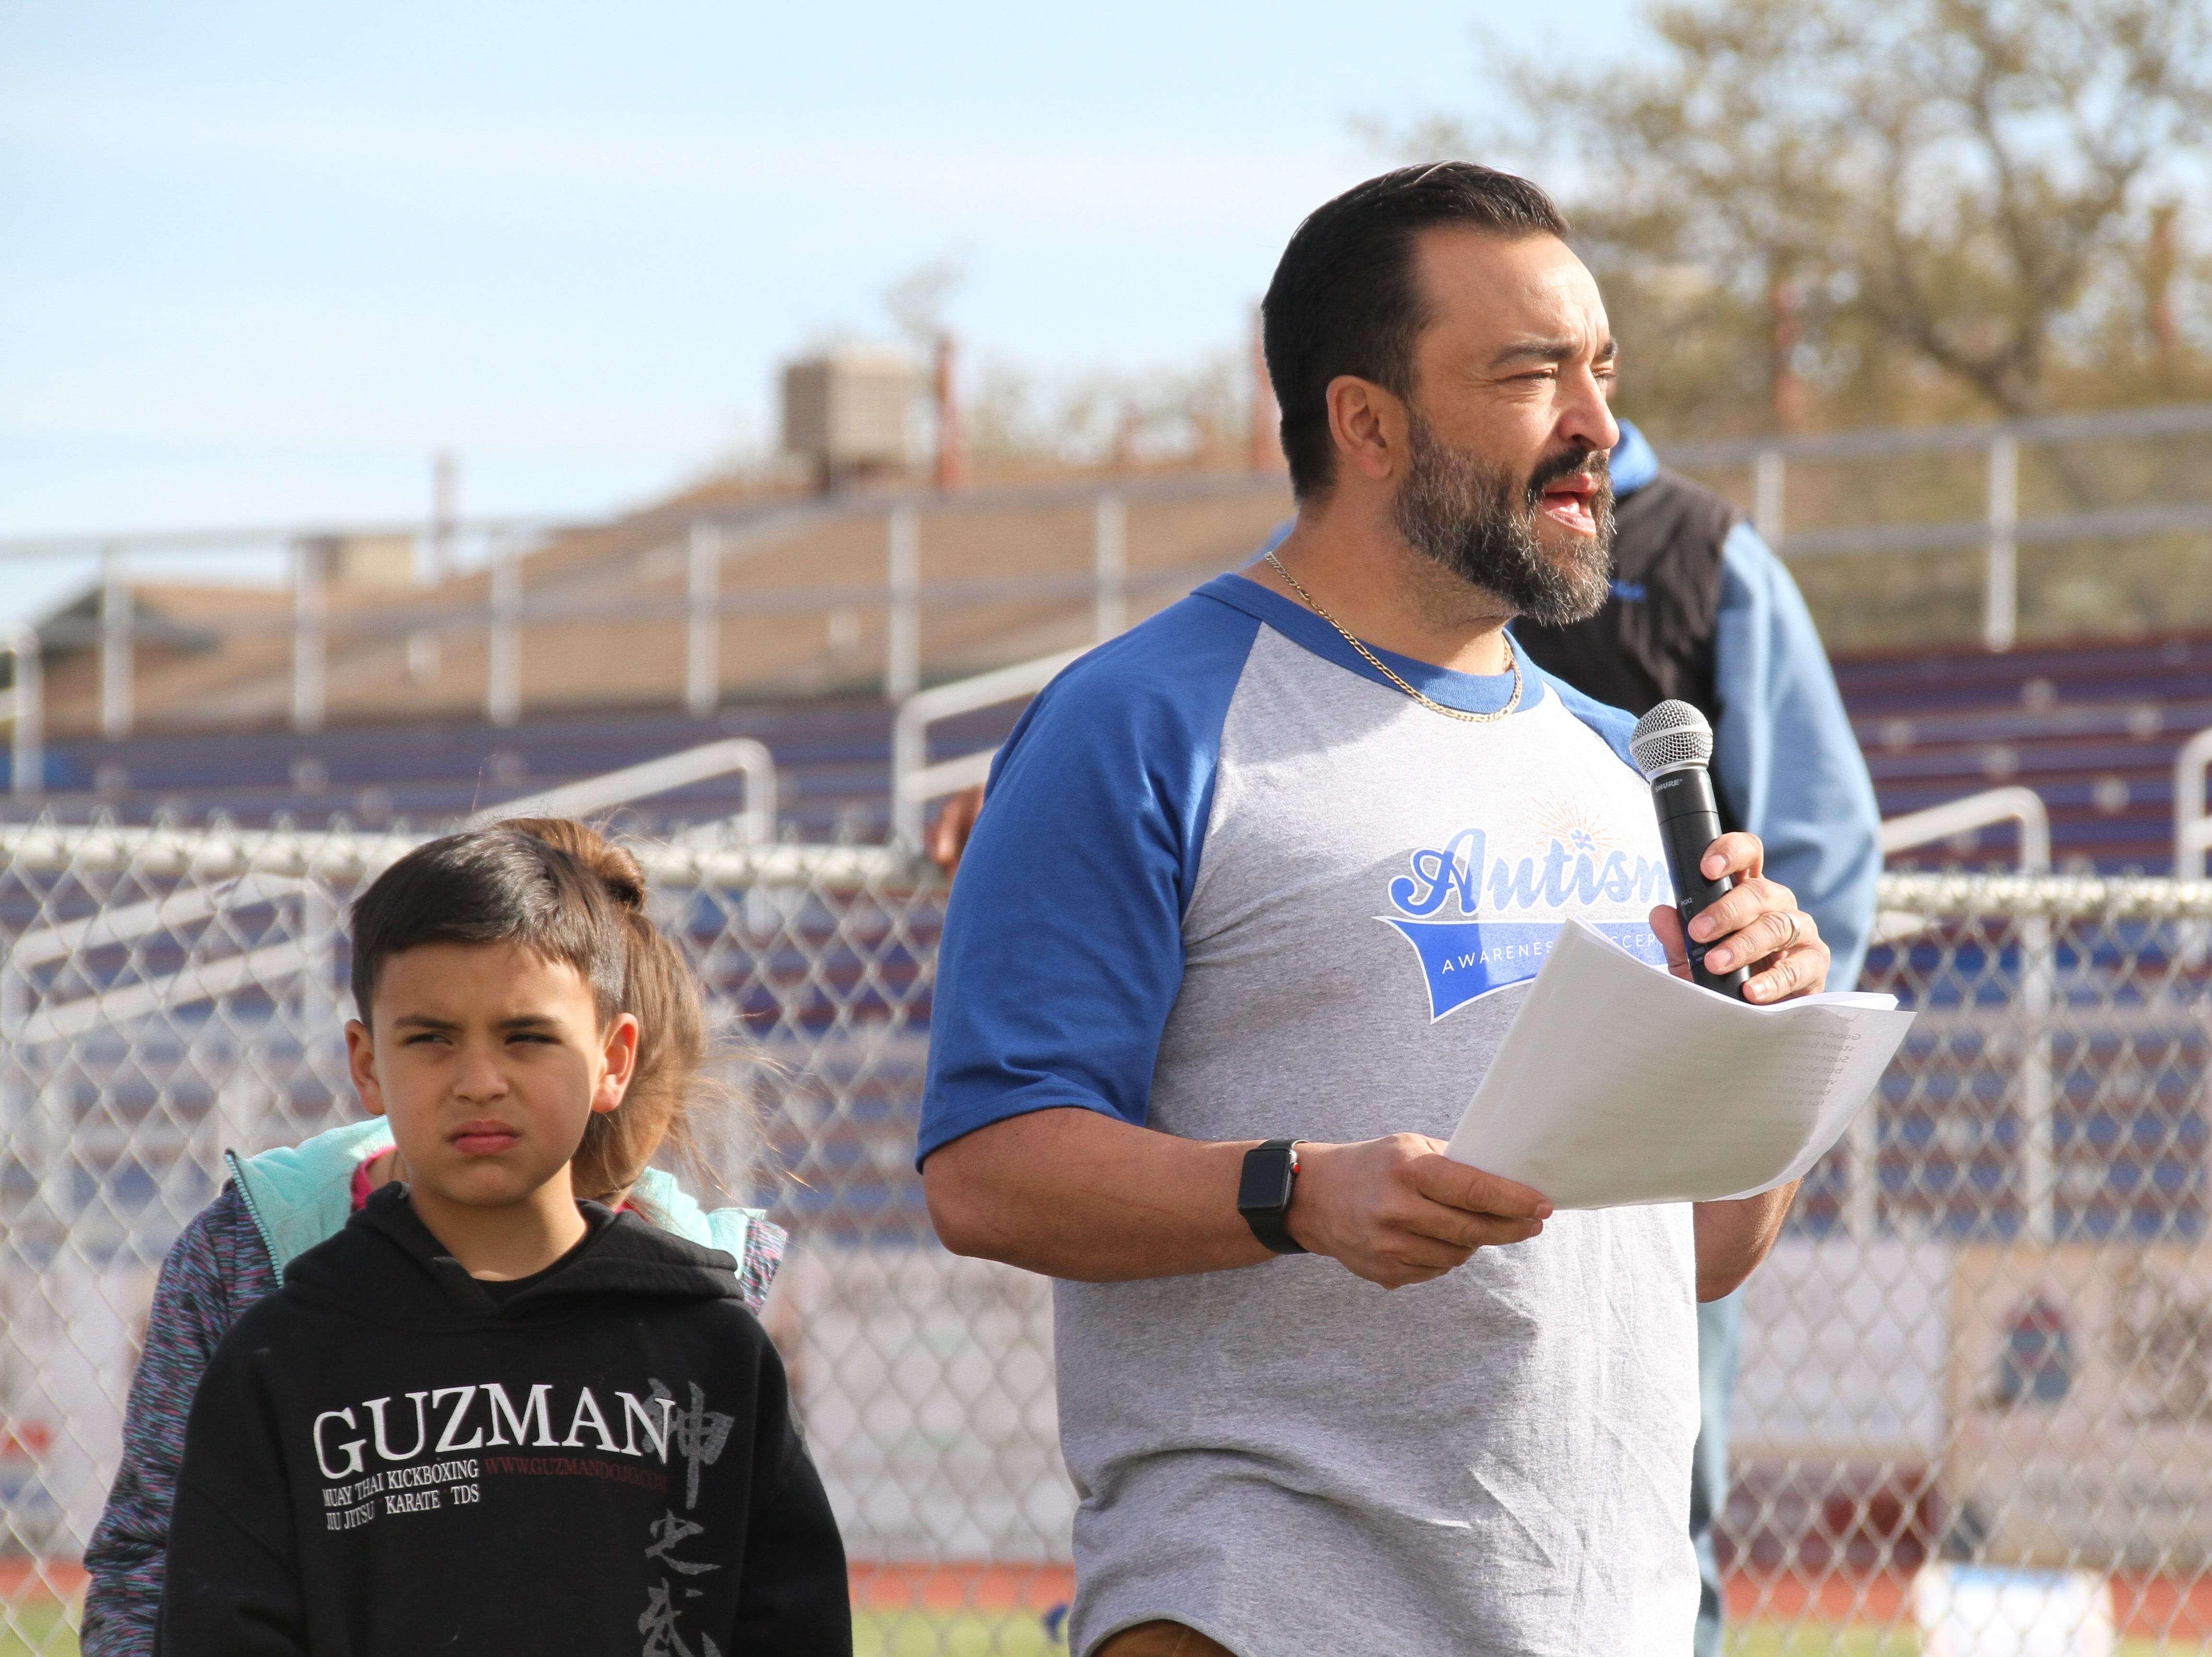 Deming Public Schools Superintendent Dr. Arsenio Romero, whose daughter has autism was invited to be this year's Deming Autism Walk speaker. At Romero's left is his 8-year-old son Andru and behind him is 9-year-old Adilen.